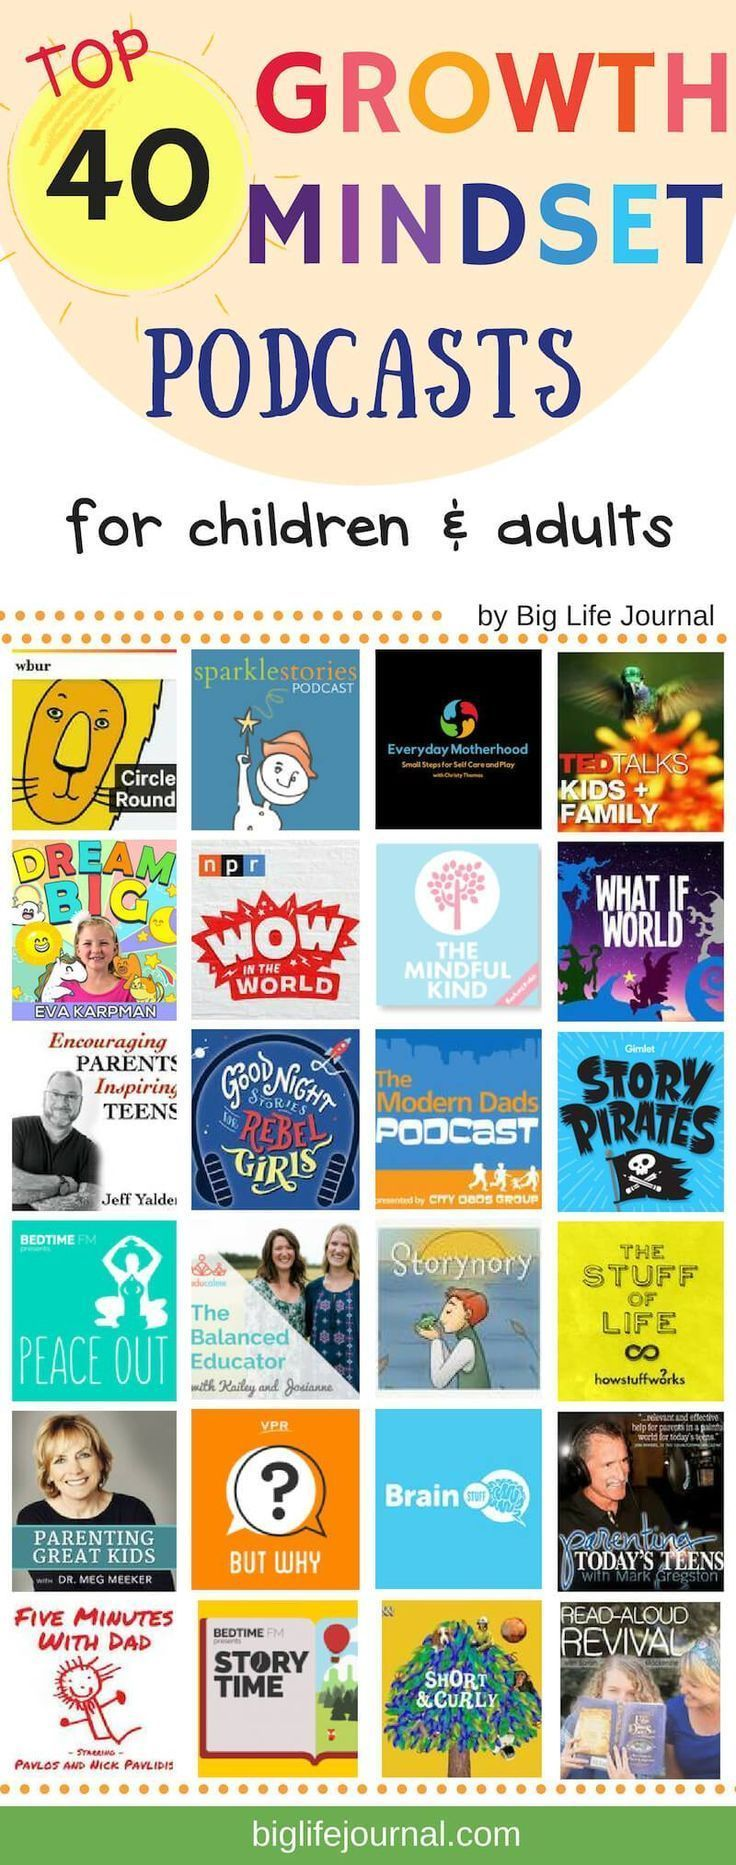 Top 40 Growth Mindset Podcasts for Kids, Teens, and Parents